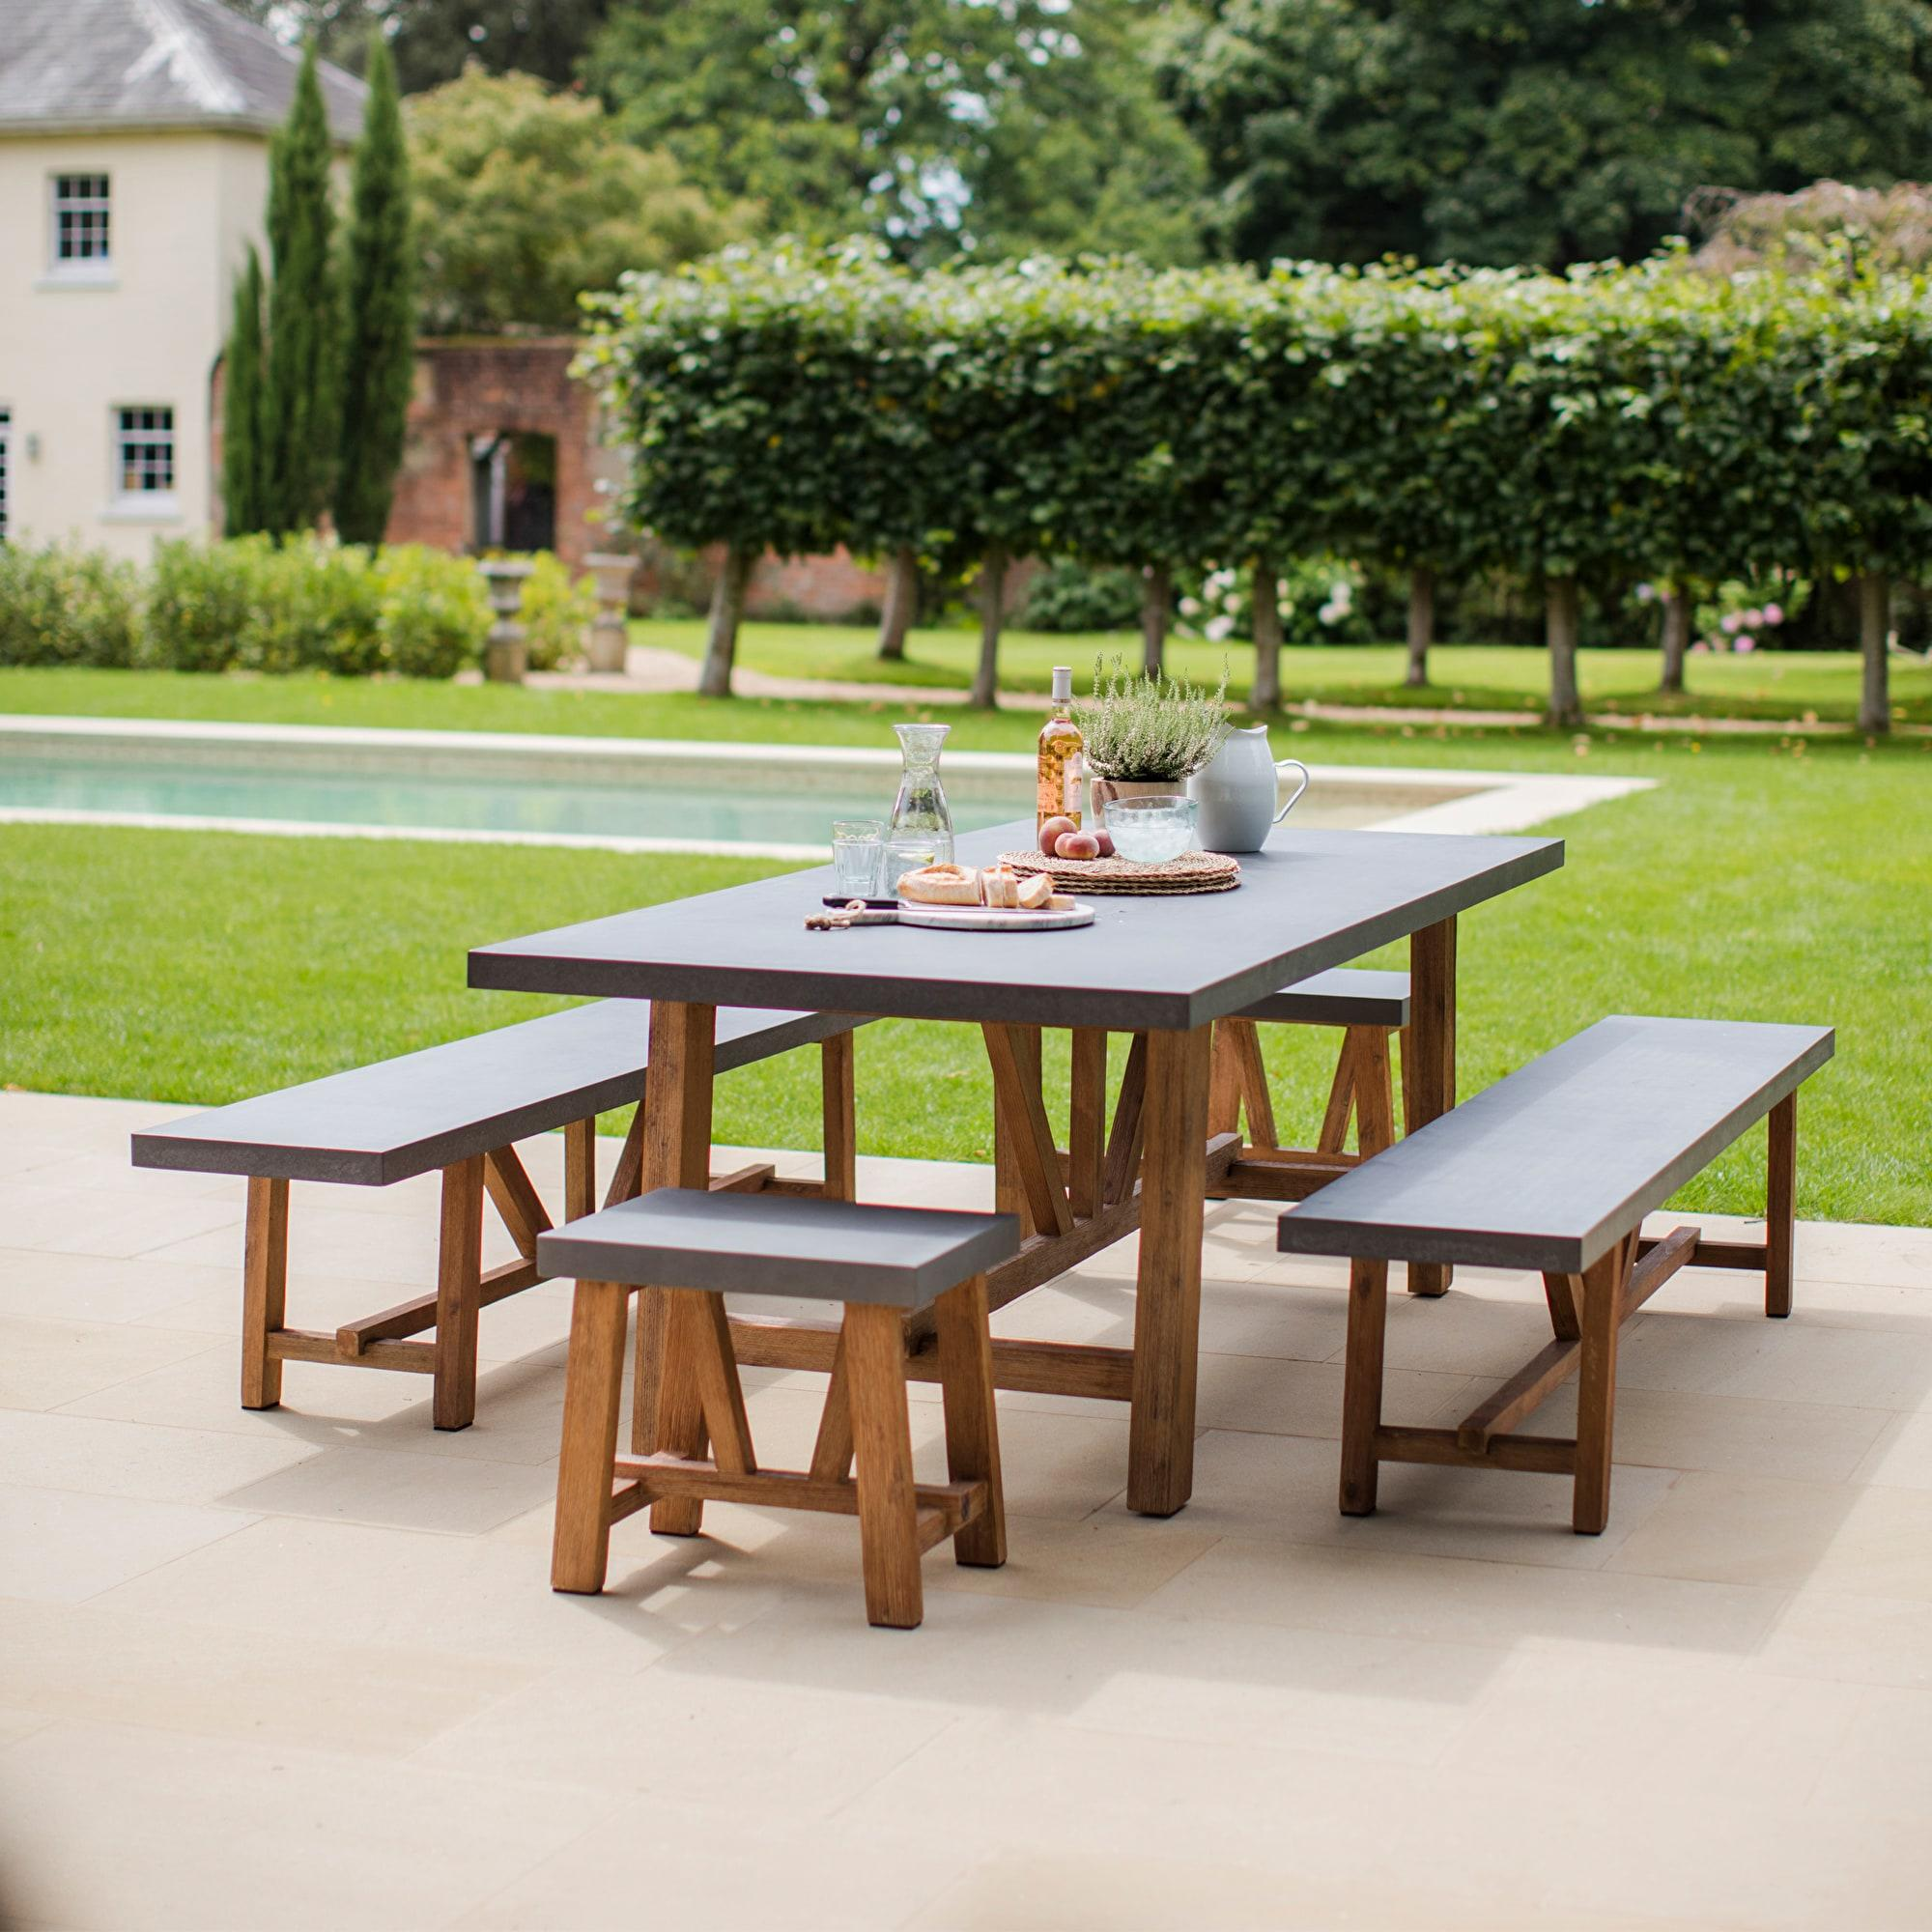 garden table with cement fibre and hardwood benches and stools